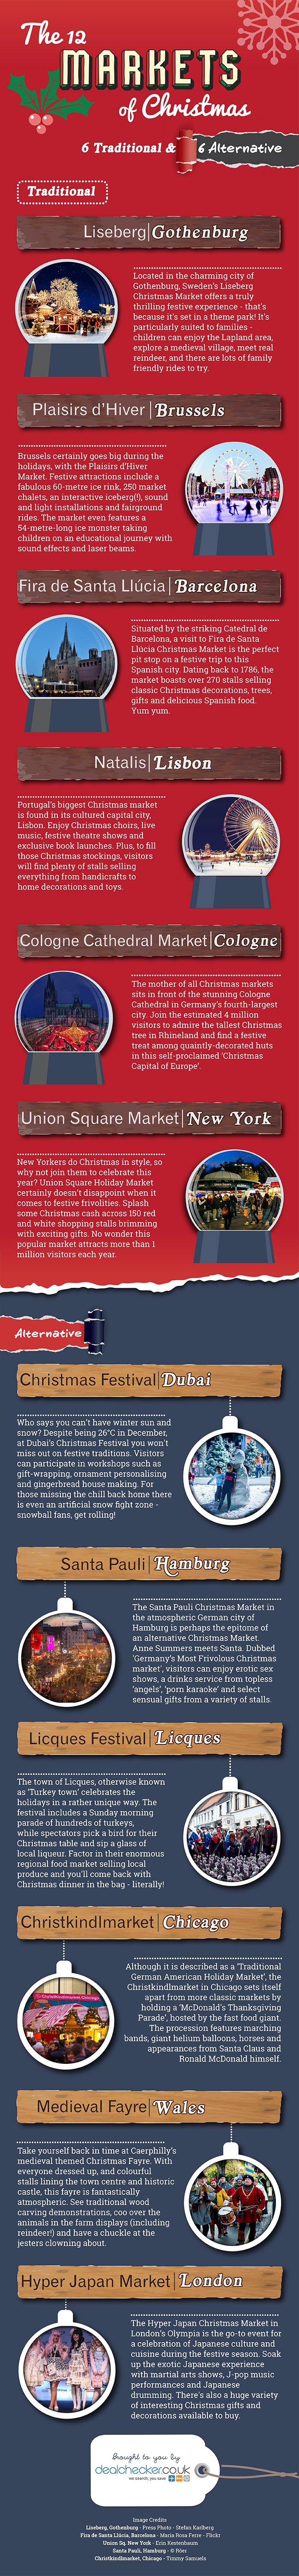 Infographic: The 12 Markets of Christmas #infographic